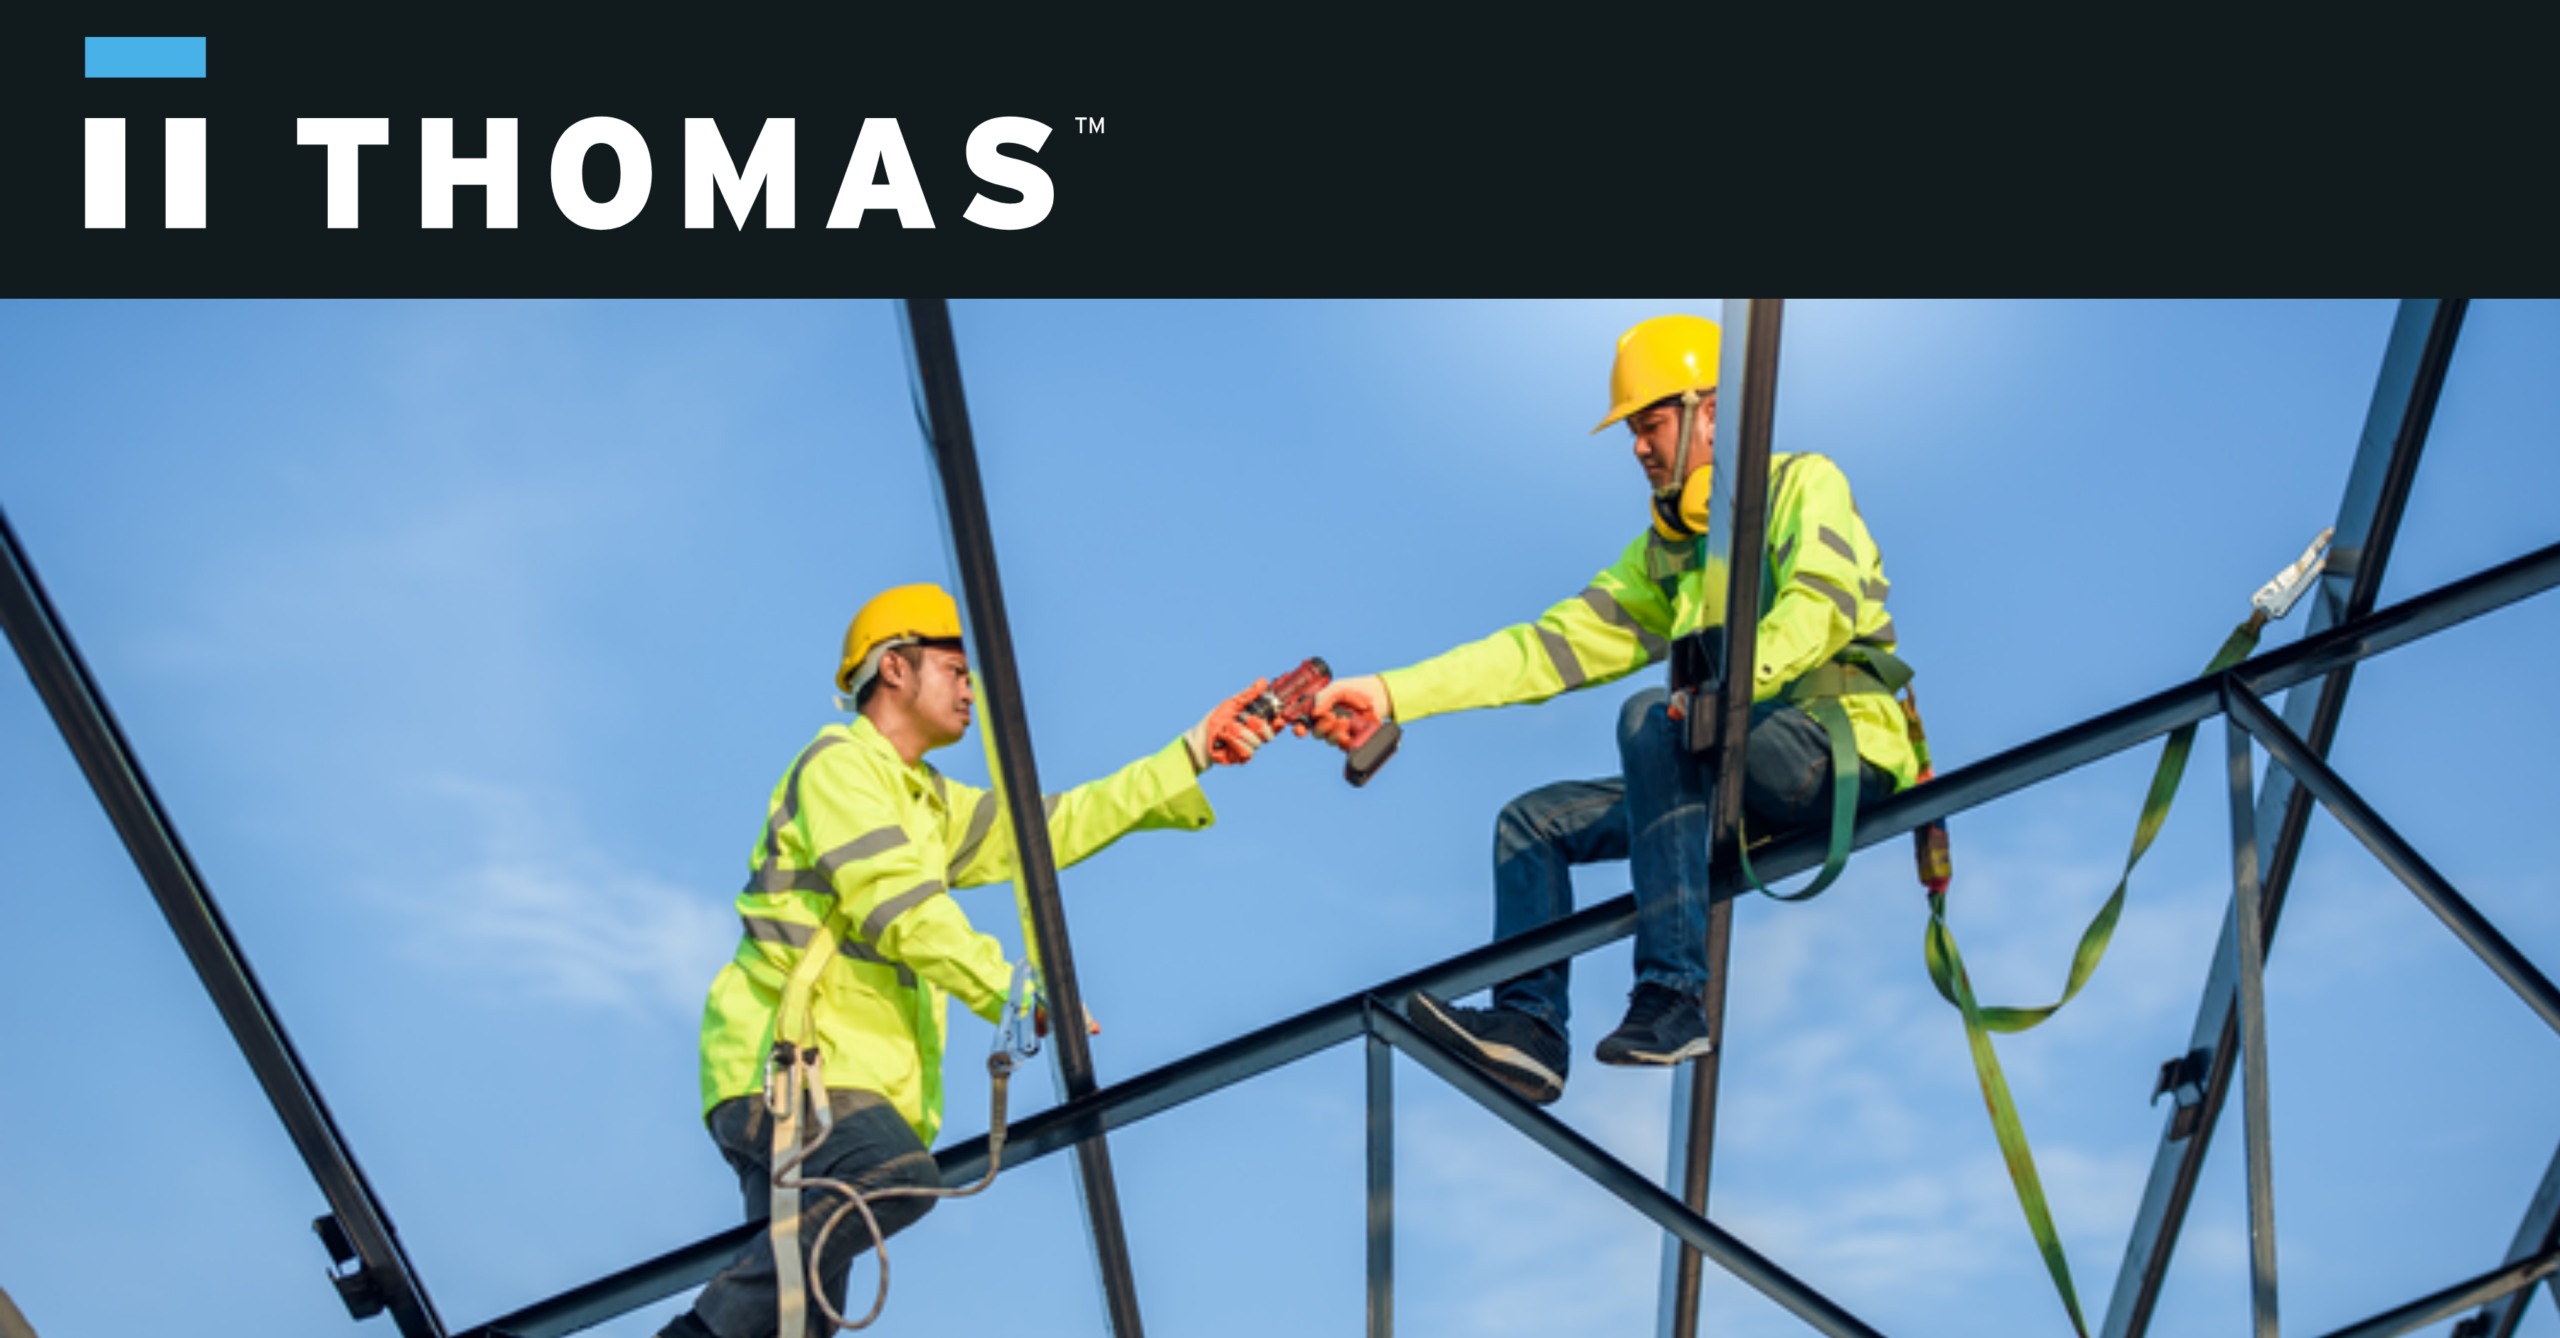 Two men sitting on a construction site, the one is handing a tool to the other.